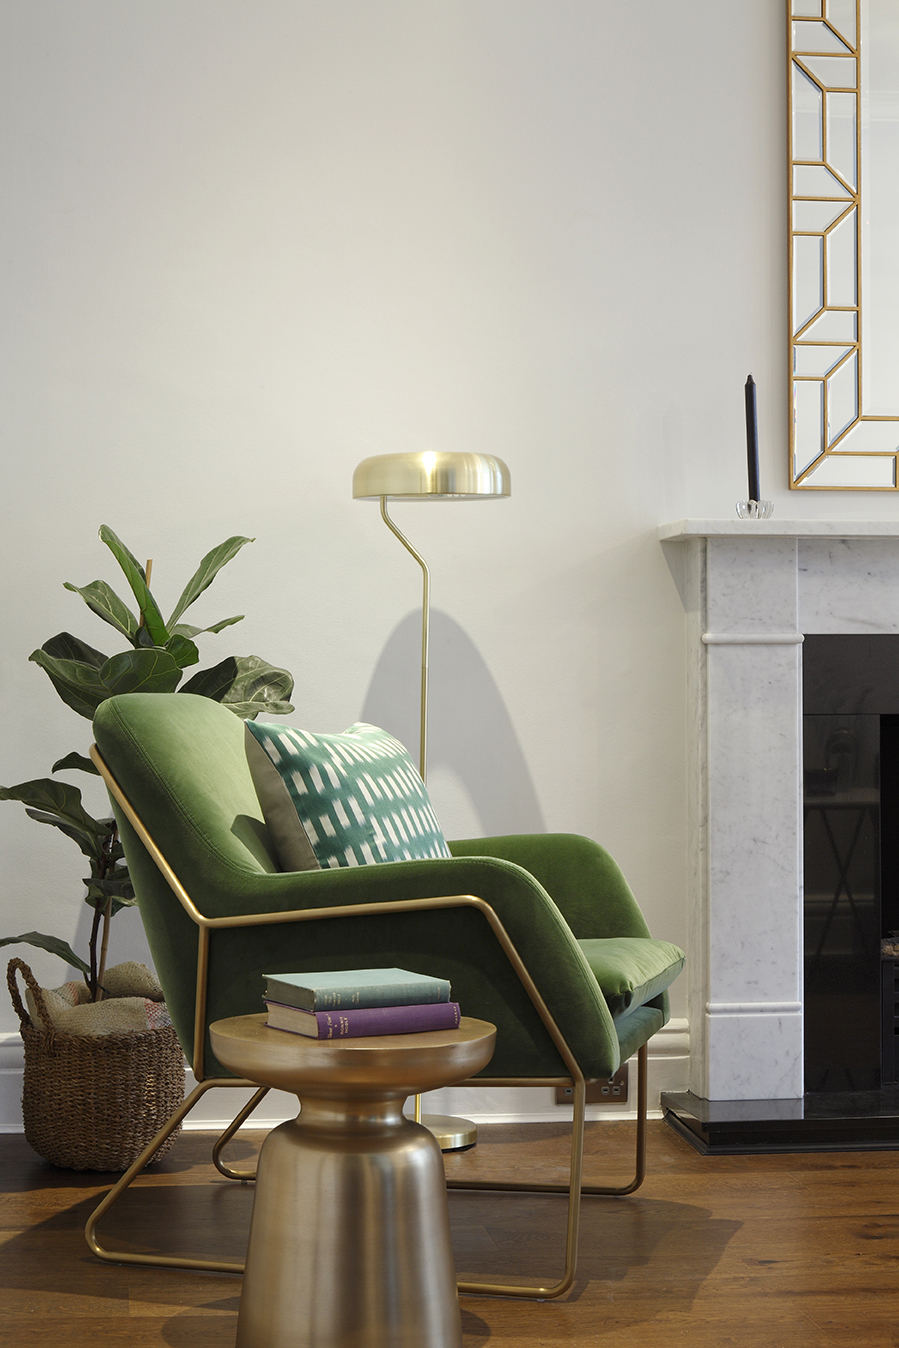 NW1 - Living room - displaying the reading corner with green velvet armchair.jpg